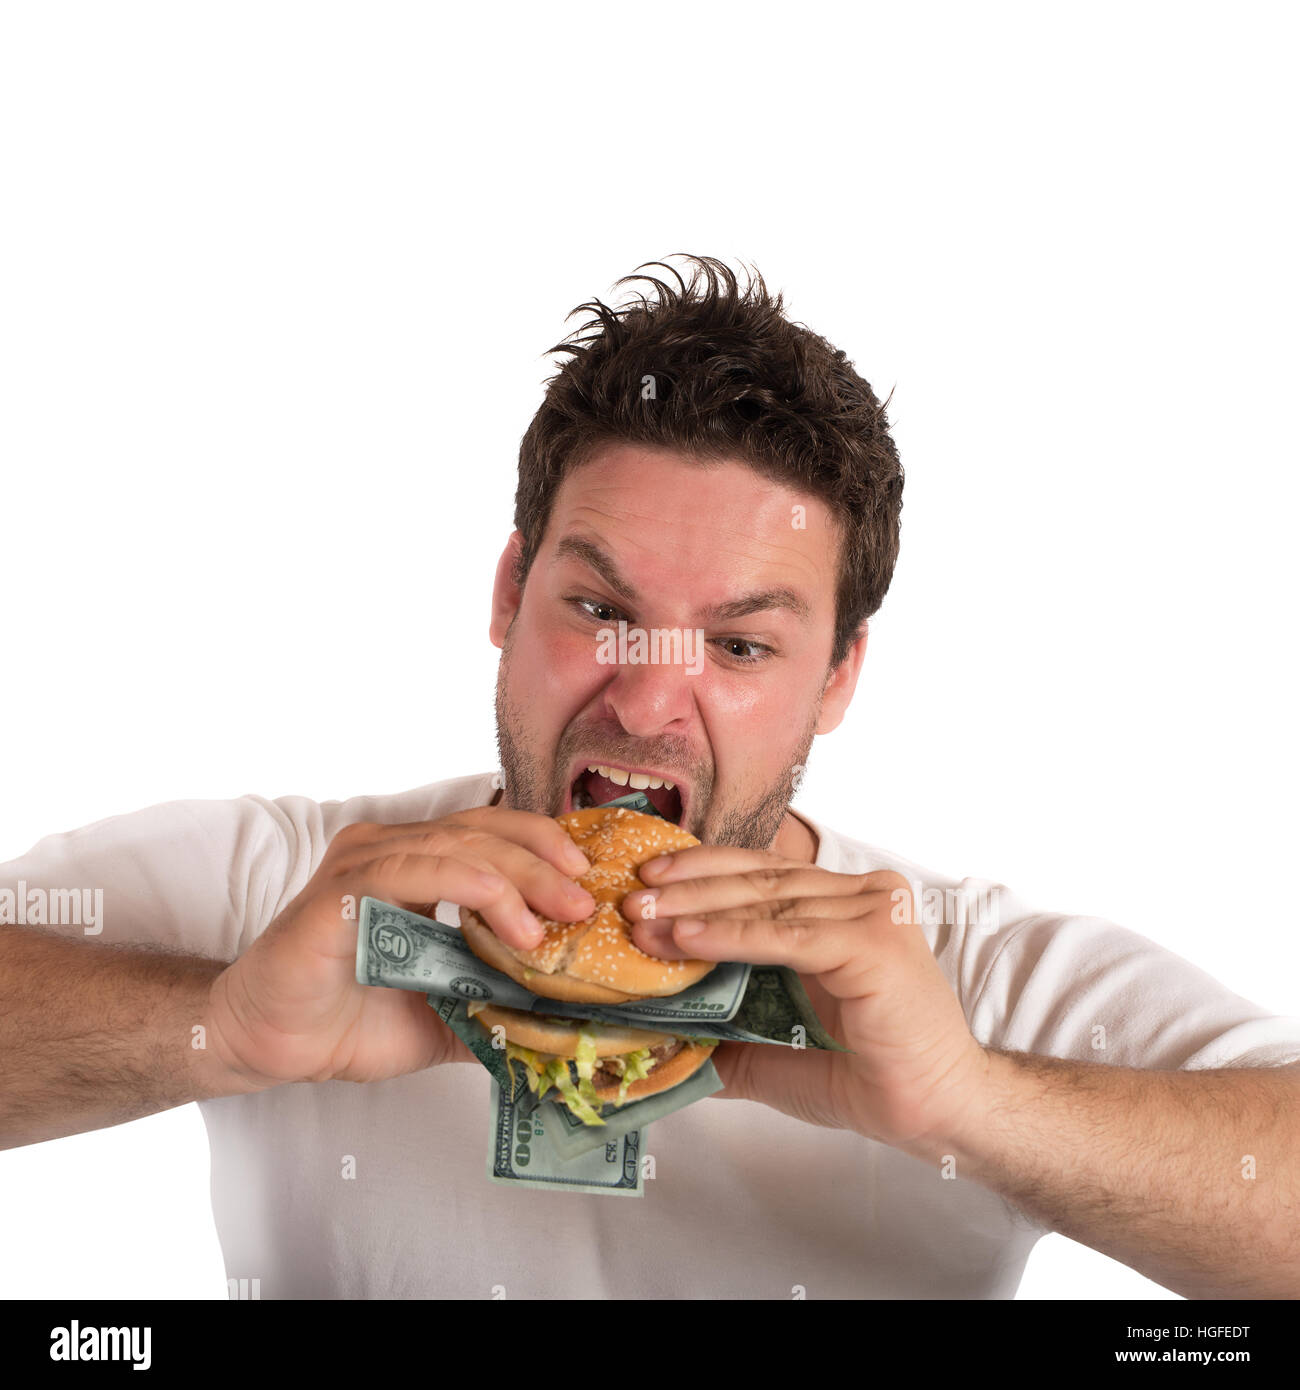 Greedy and fat businessman - Stock Image